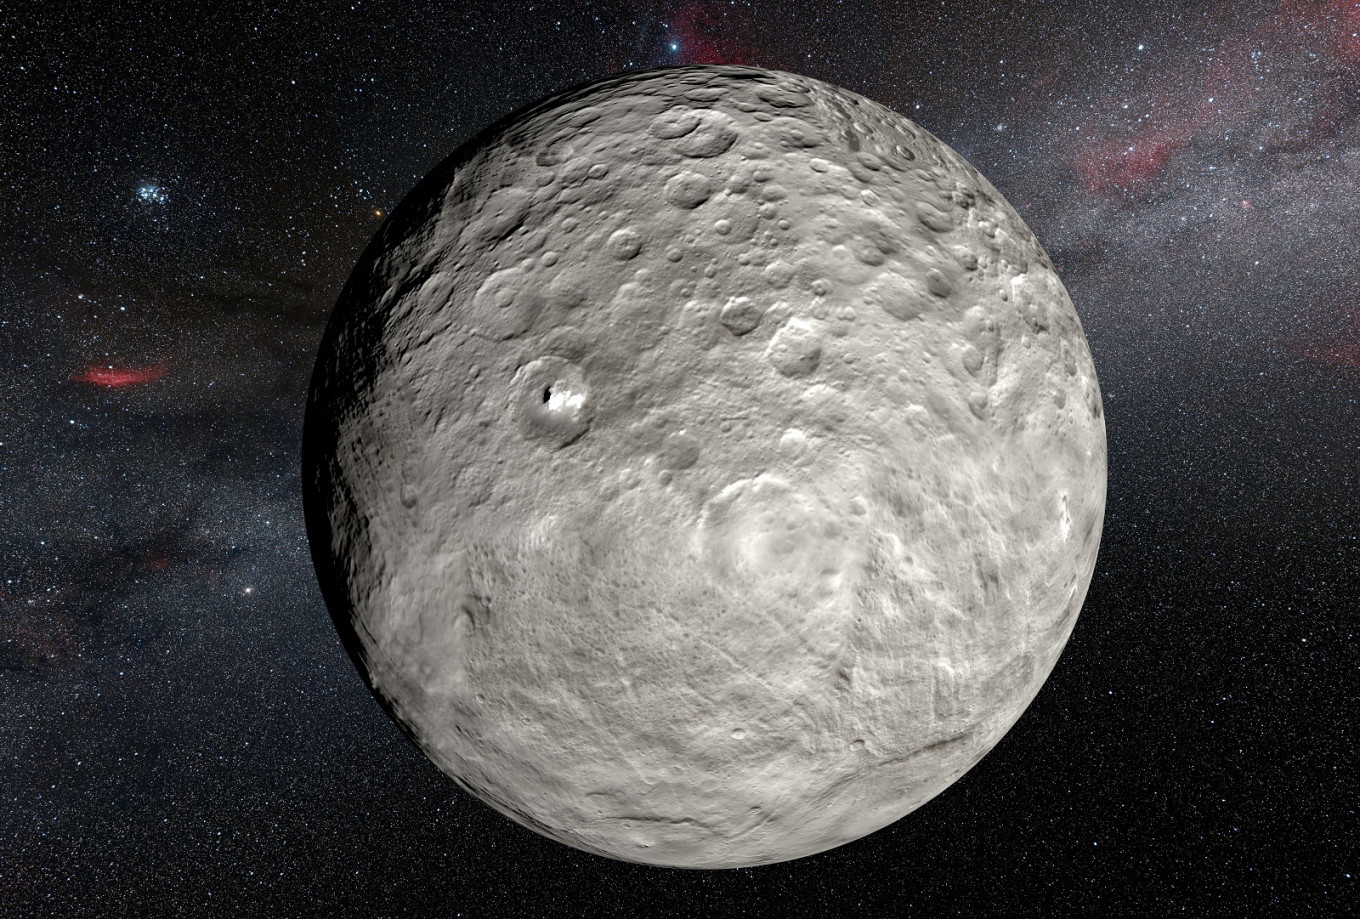 Dwarf planet Ceres is an ocean world: Study - The Jakarta Post - Jakarta Post